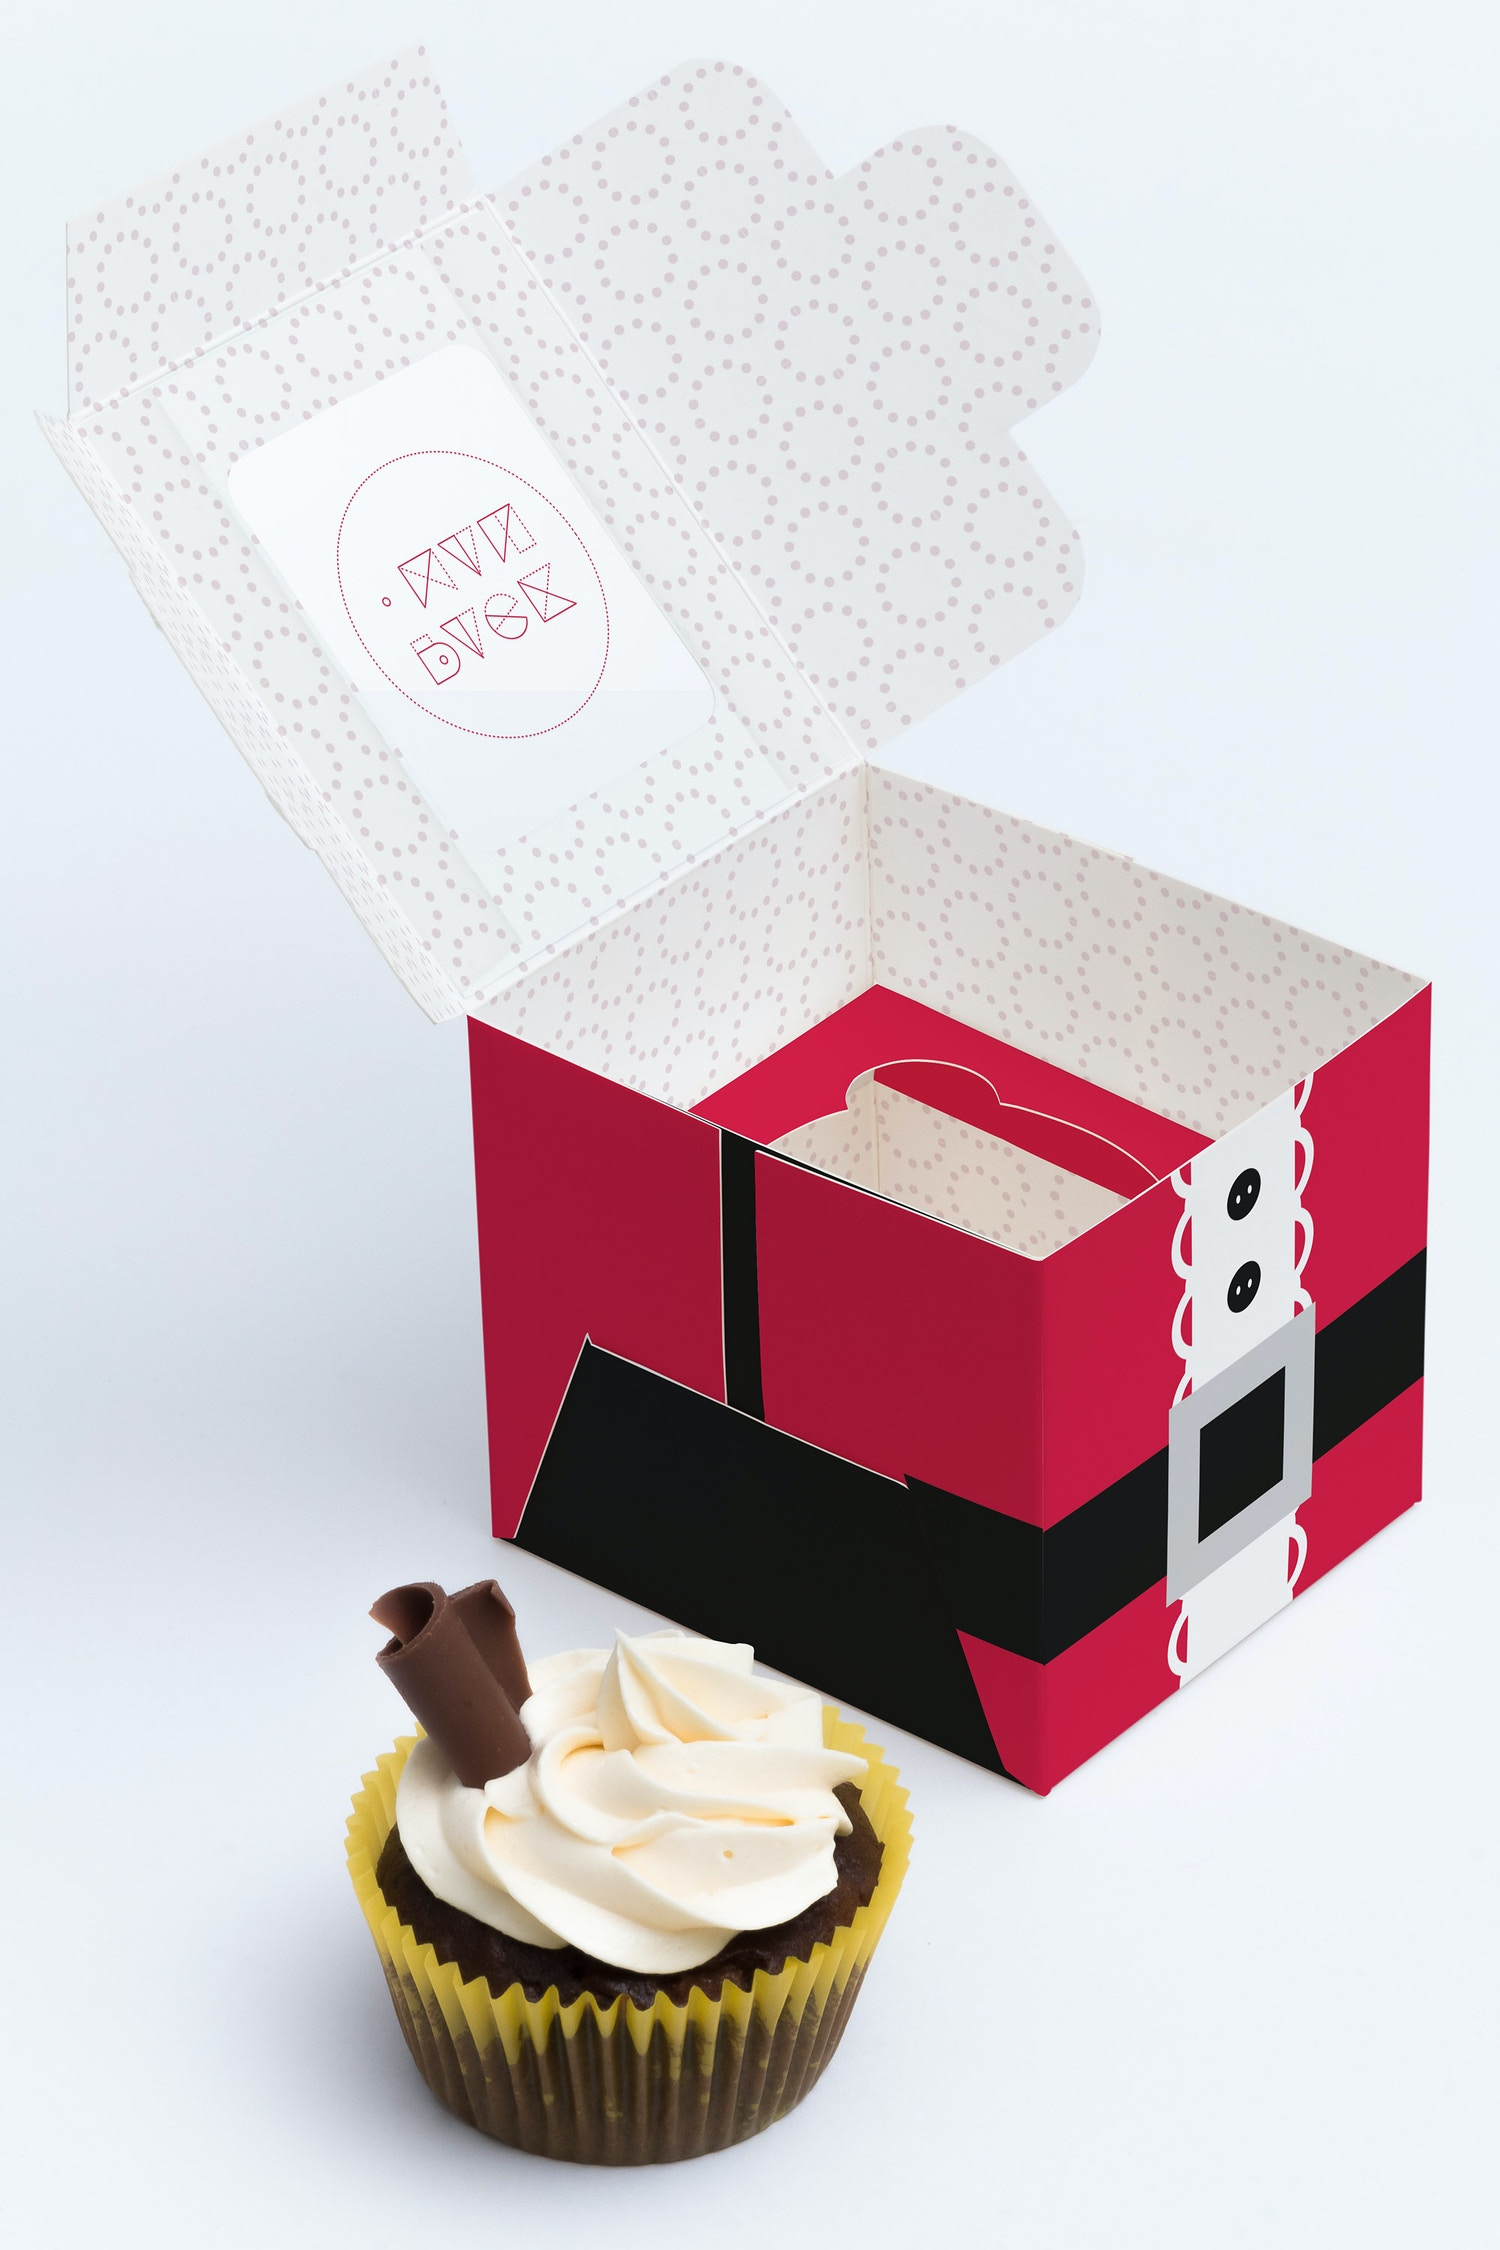 One Cupcake Box Mockup 02 by Ktyellow  on Original Mockups